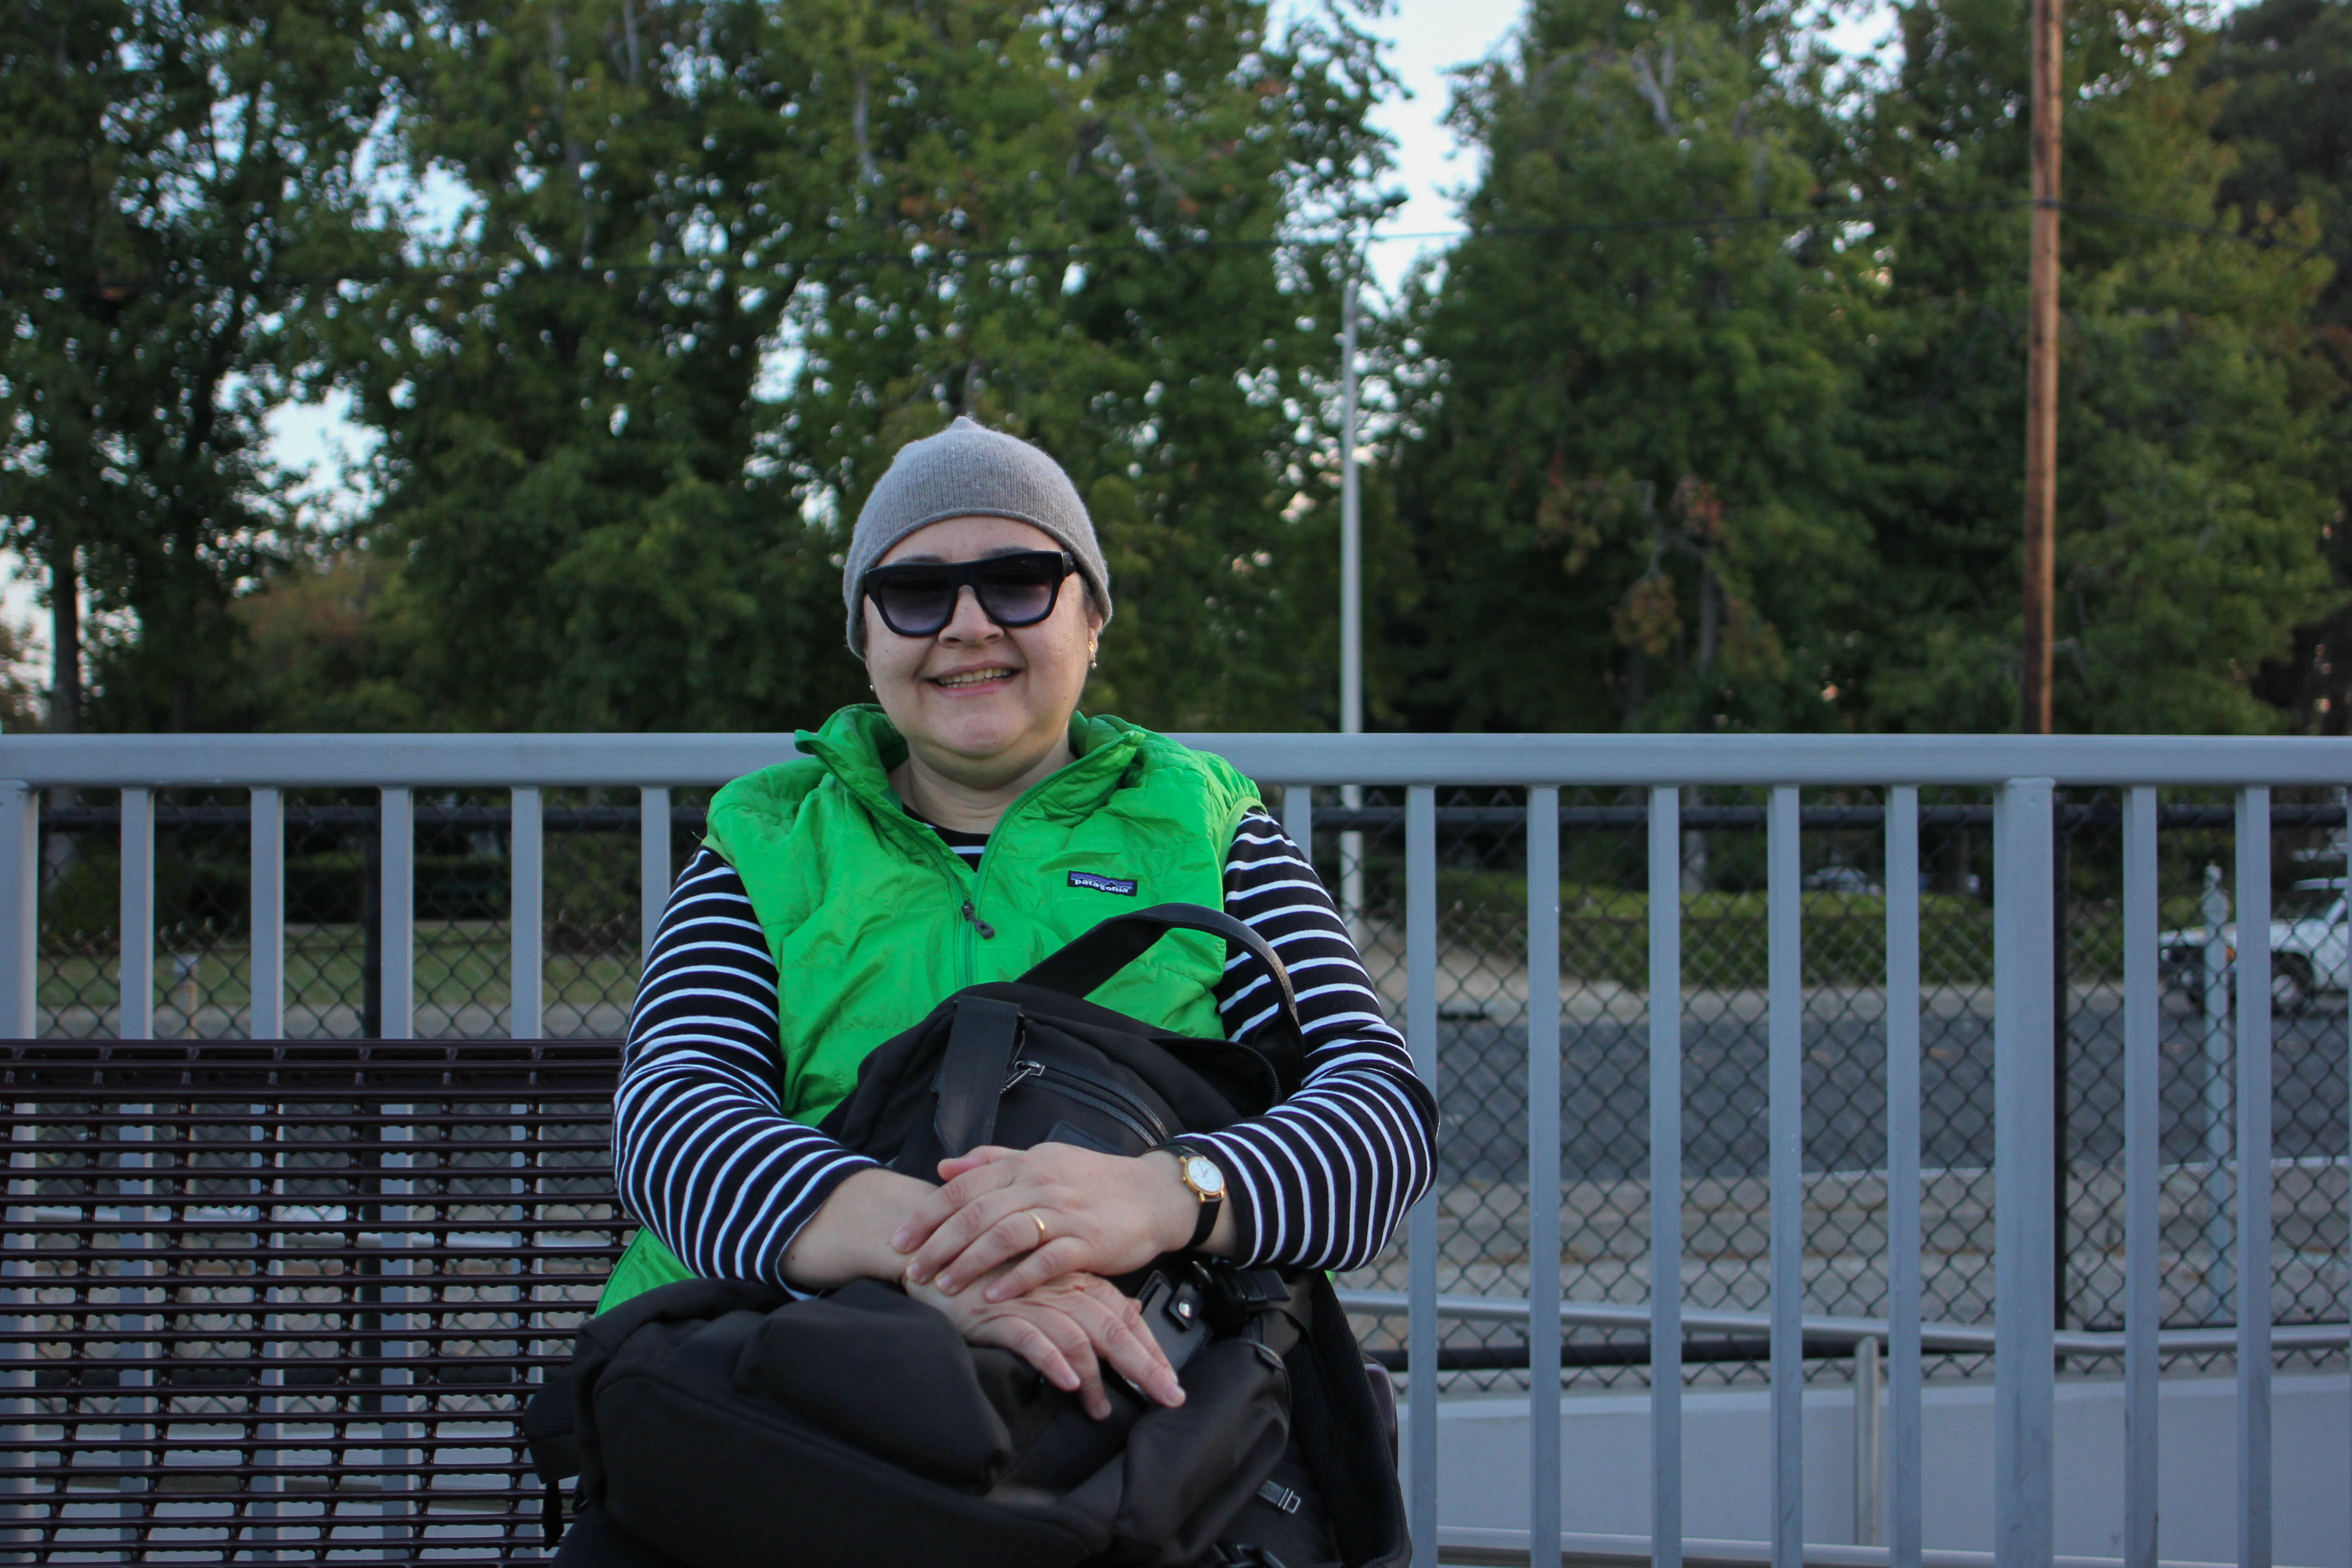 """Monica Stein is waiting for the northbound Caltrain at California Avenue station on the morning of Sept. 29. Monica rides the train a few times per month in order to go to the city. """"It's just more feasible (than going by car),"""" she says. """"And there are no parking fees."""" (Charlotte Kosche/Peninsula Press)"""